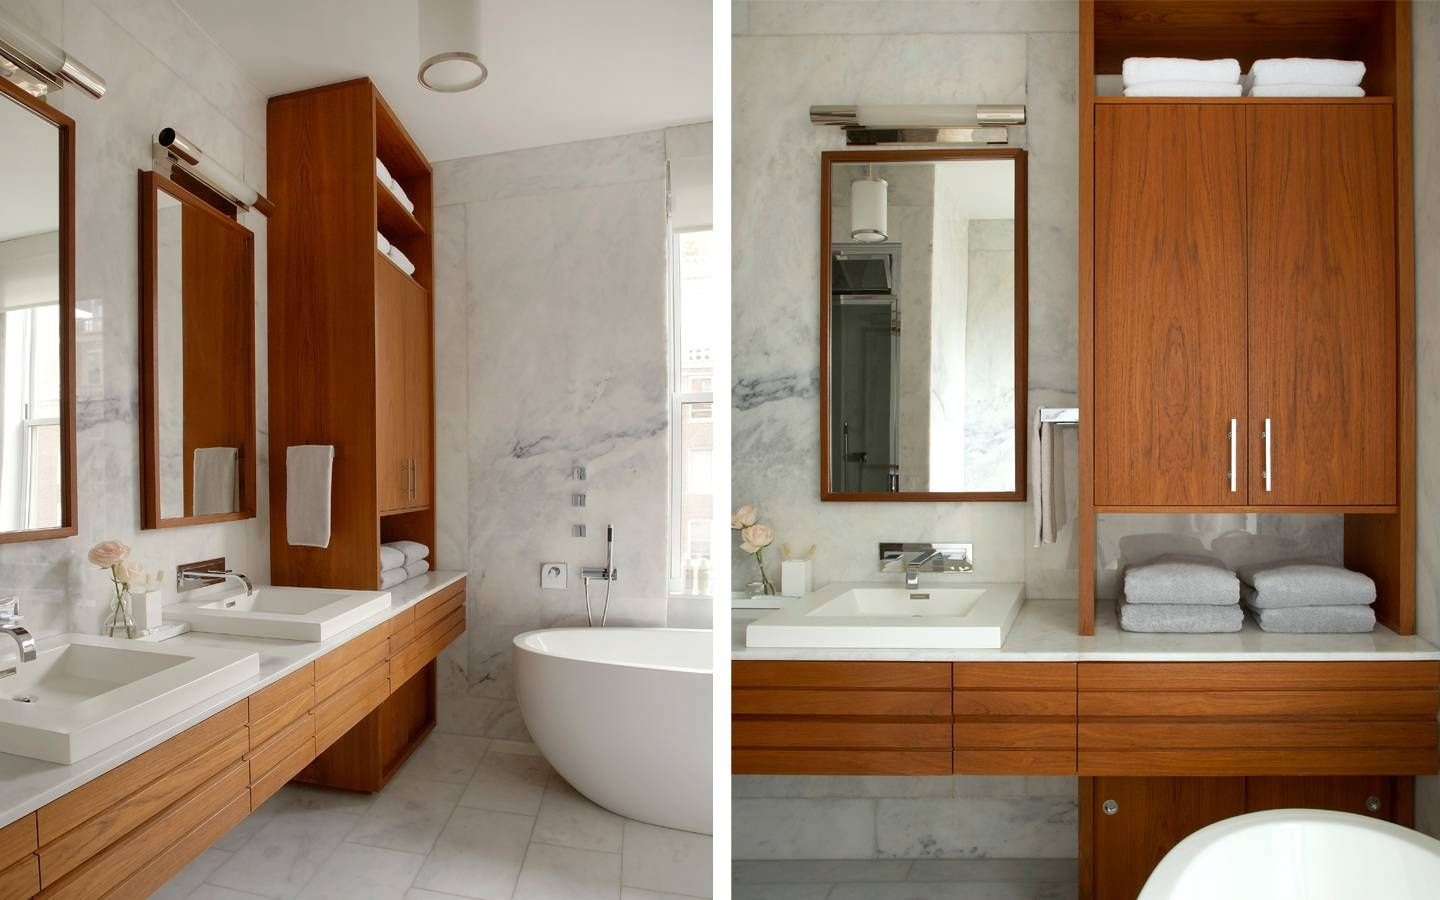 fifth avenue family residence amy lau designamy lau design home rh pinterest com Shower Kits for Small Bathrooms Tub and Shower Combo for Small Spaces